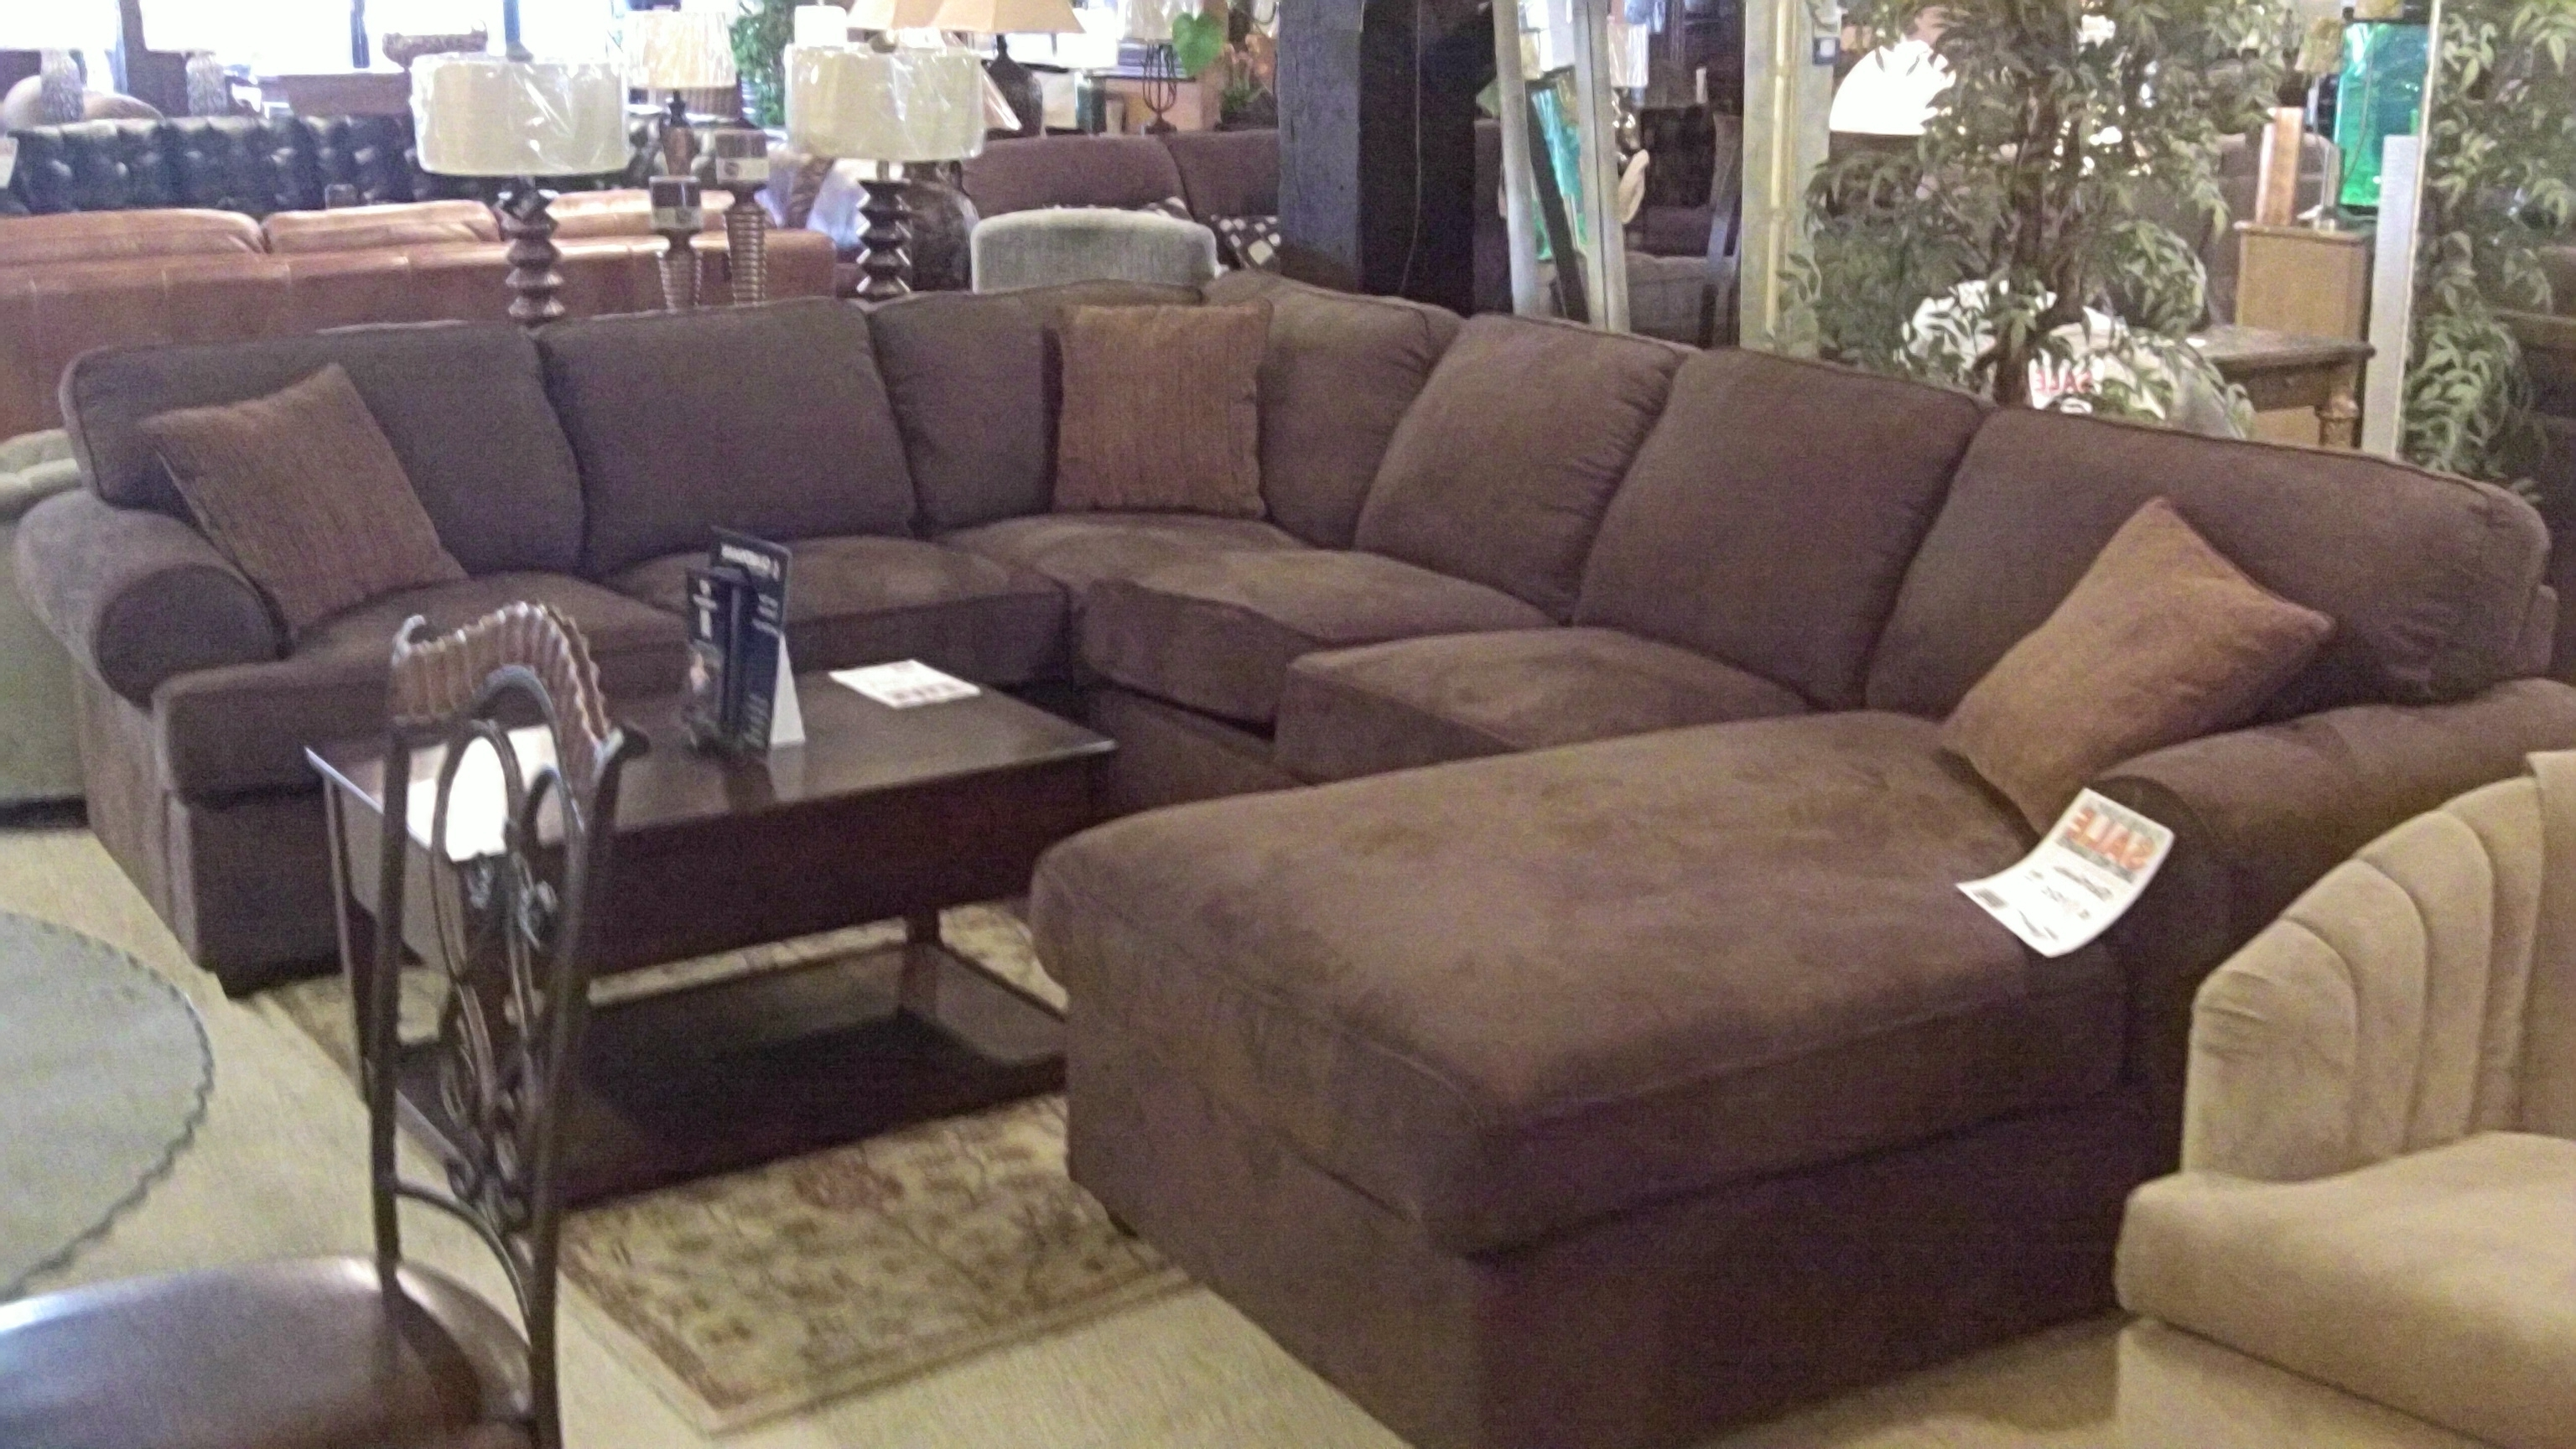 2019 Extraordinary Deep Seated Sofas Sectionals 11 For Your Broyhill Throughout Sectional Sofas At Broyhill (View 1 of 20)